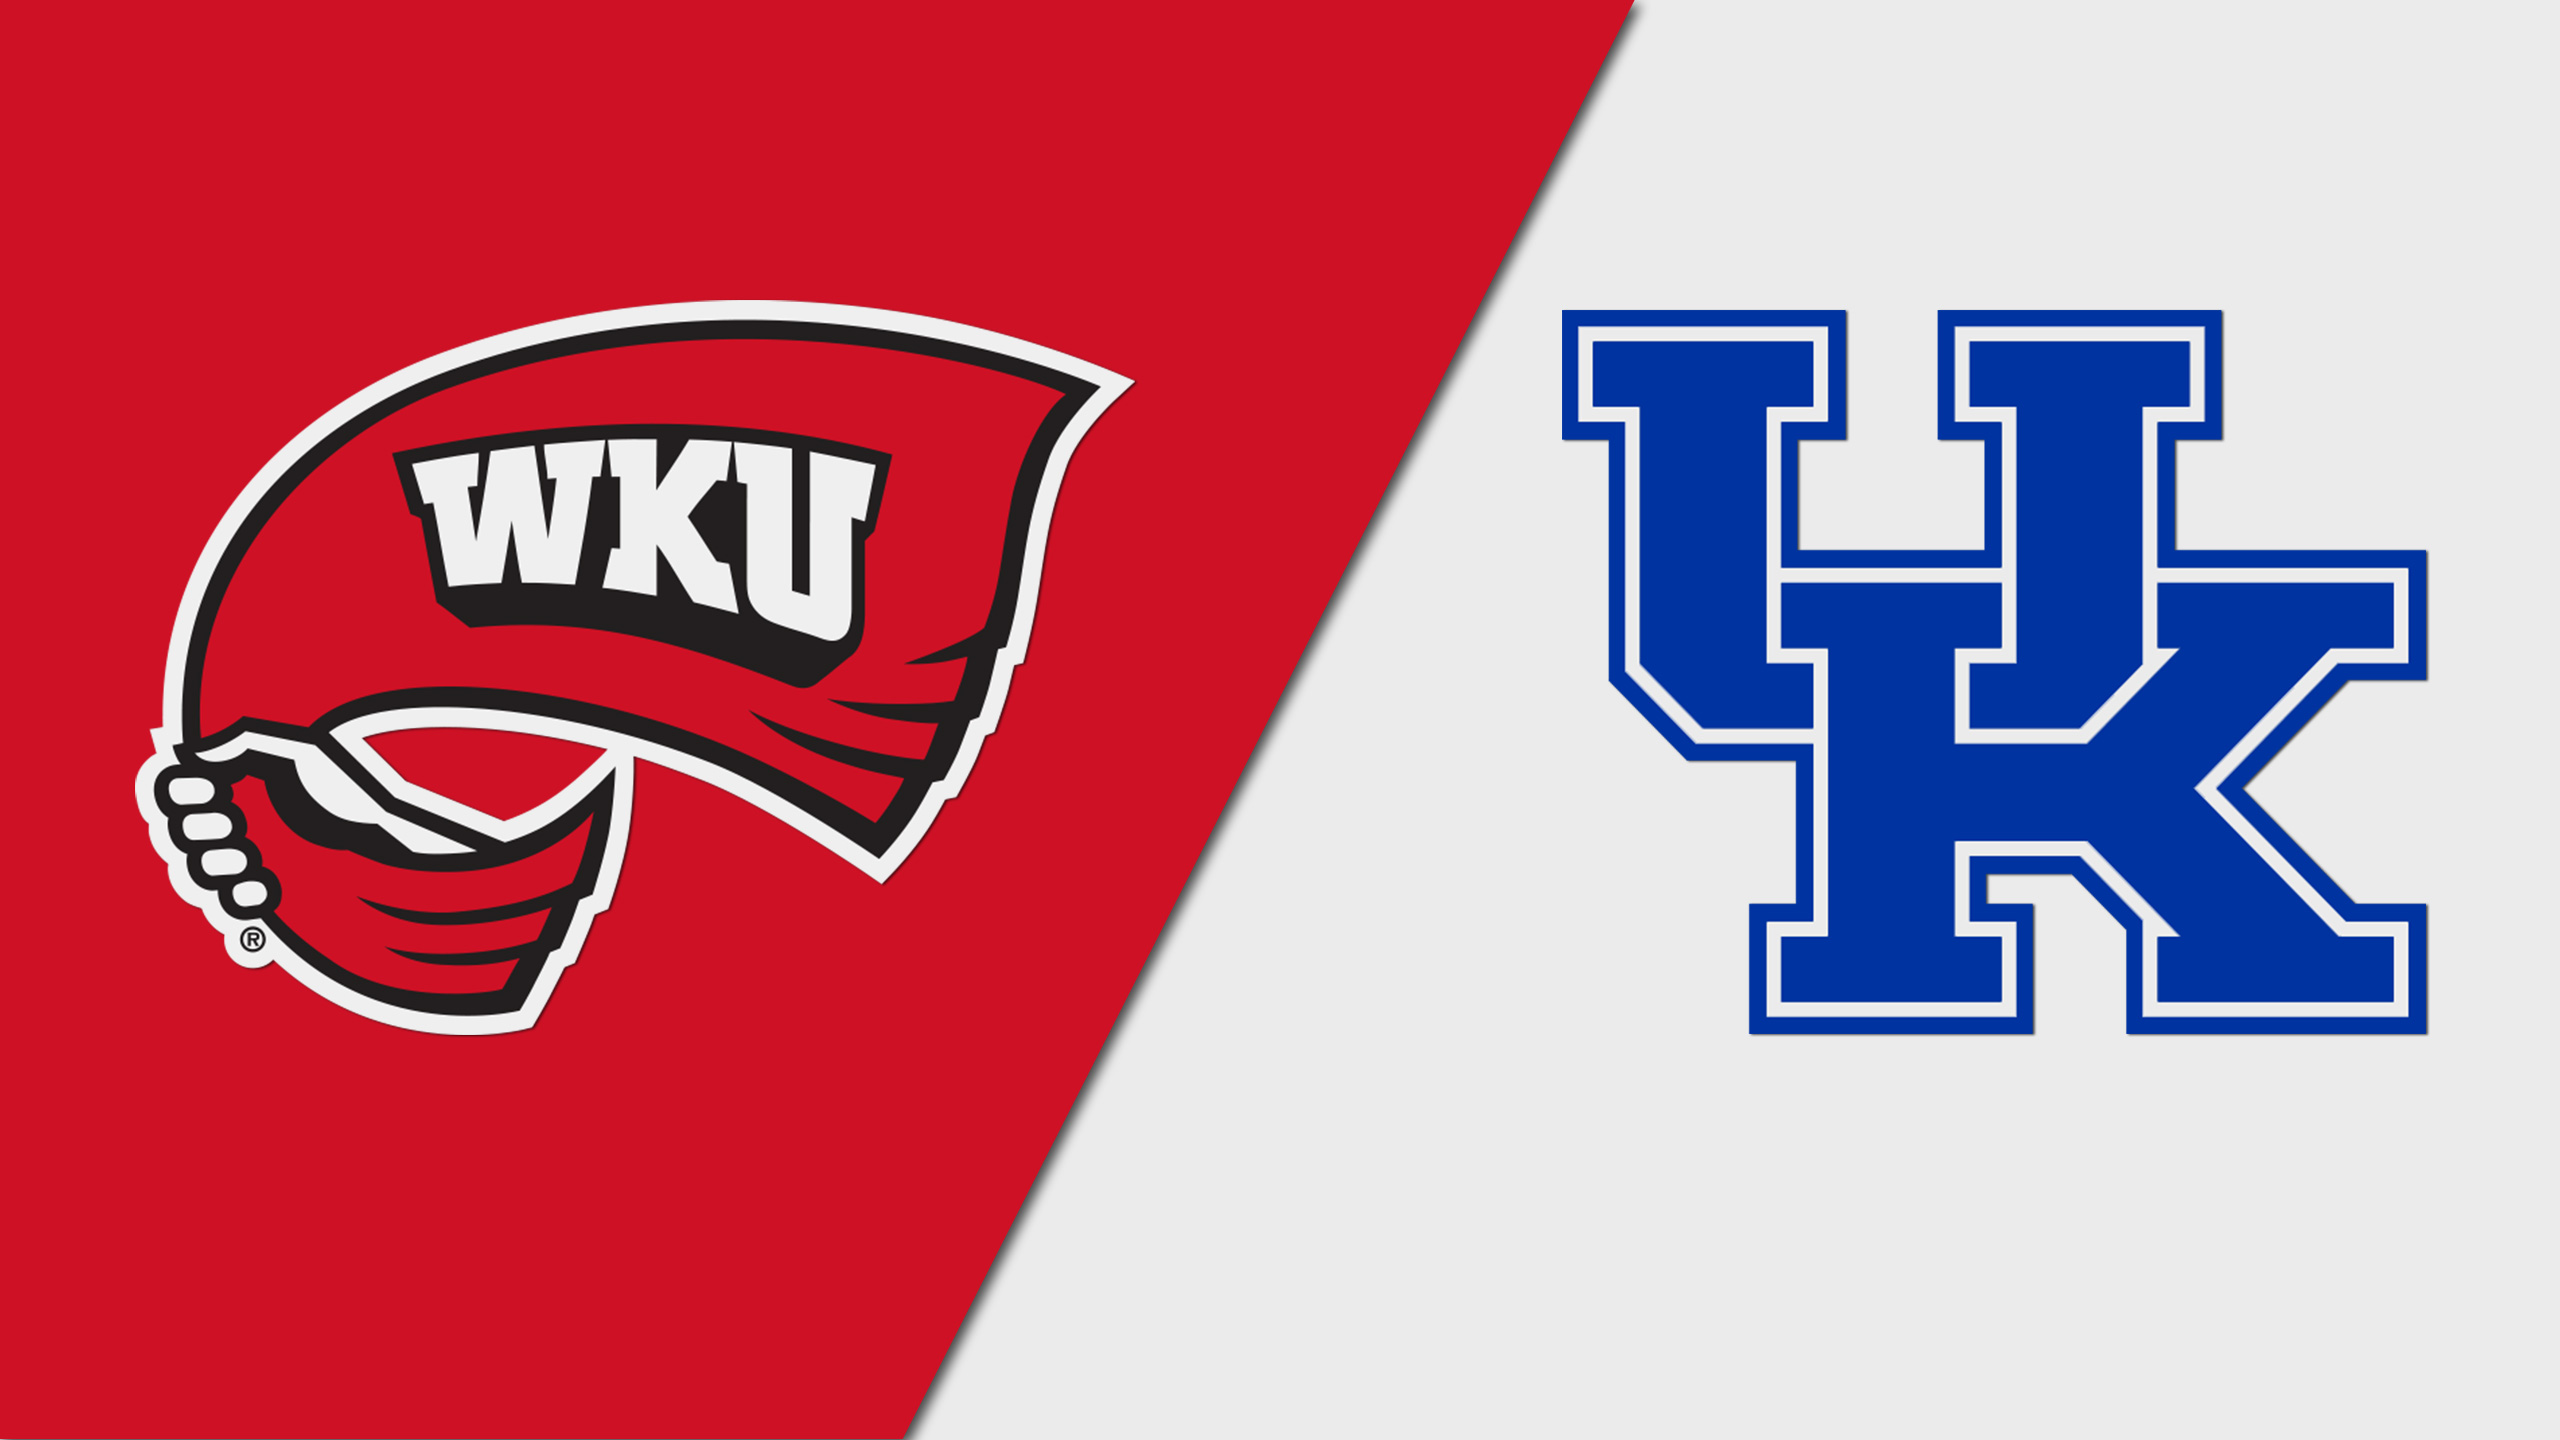 Western Kentucky vs. #17 Kentucky (Softball)